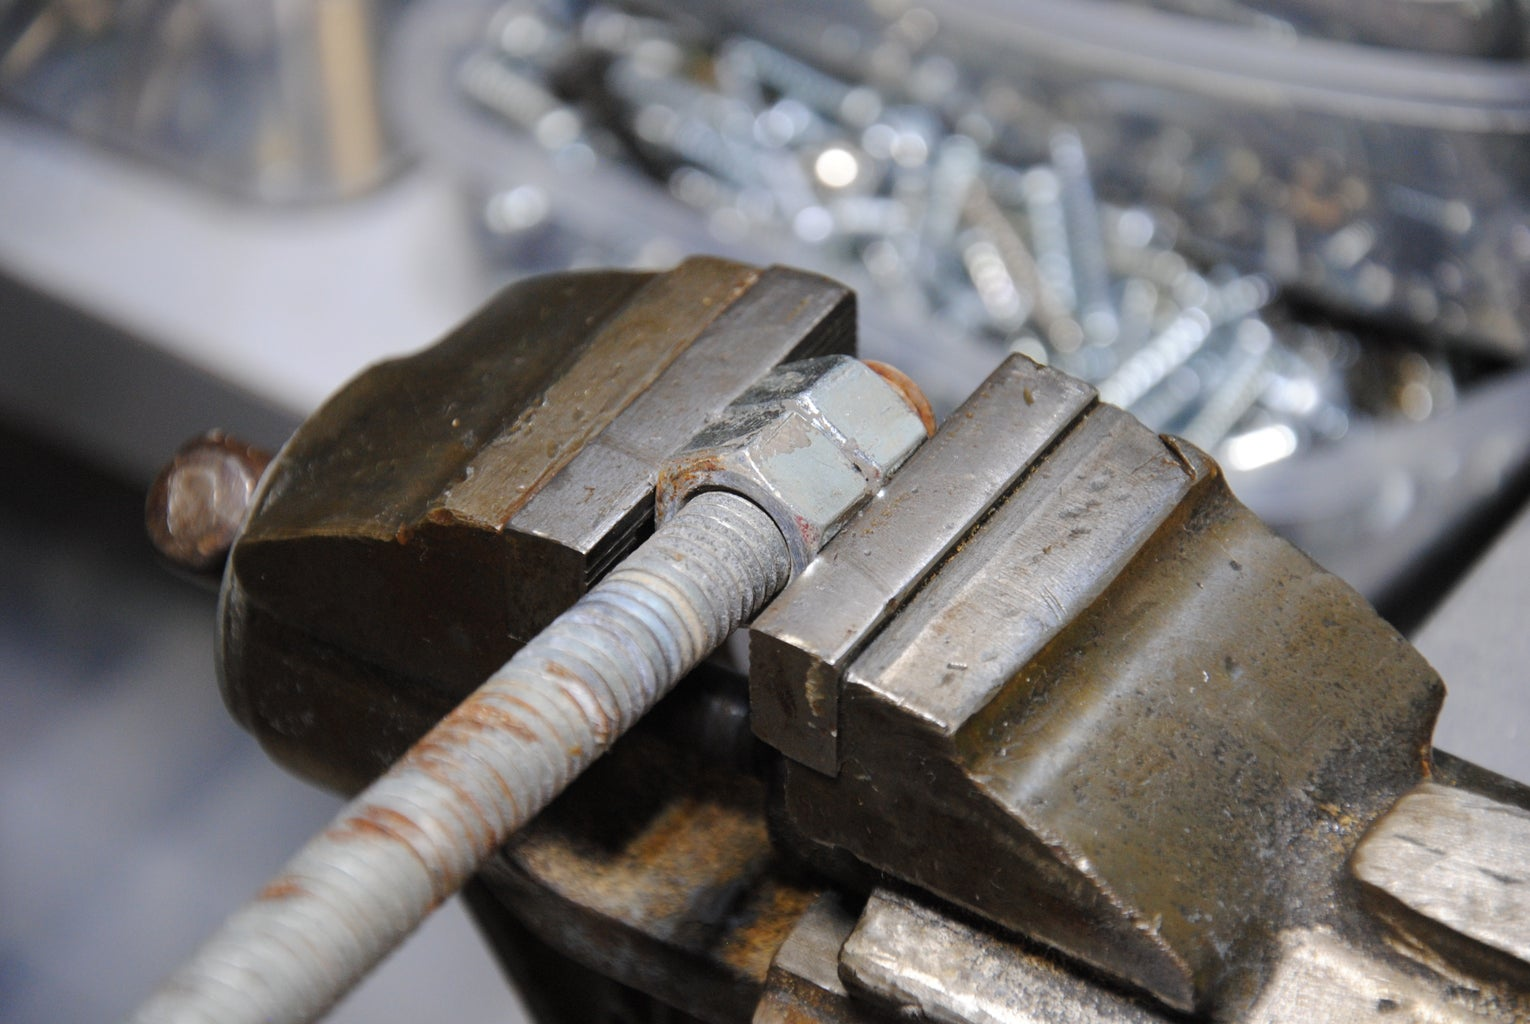 How to Mount a Bolt or Threaded Rod in a Vise Without Destroying the Threads